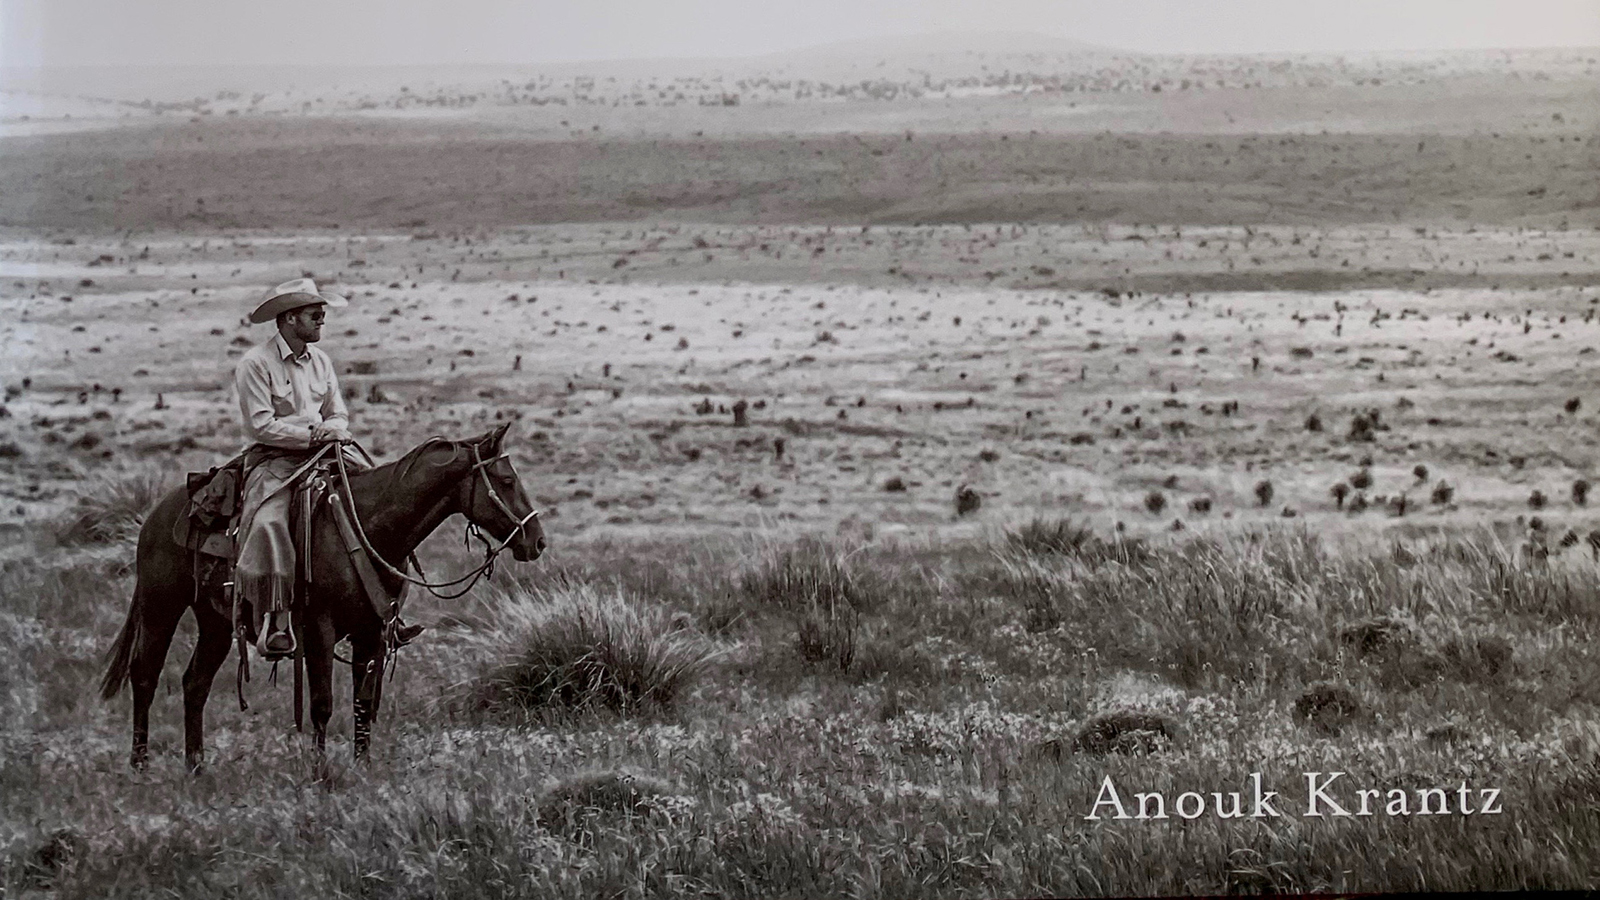 The book West: The American Cowboy features photographs of ranches and rodeos.